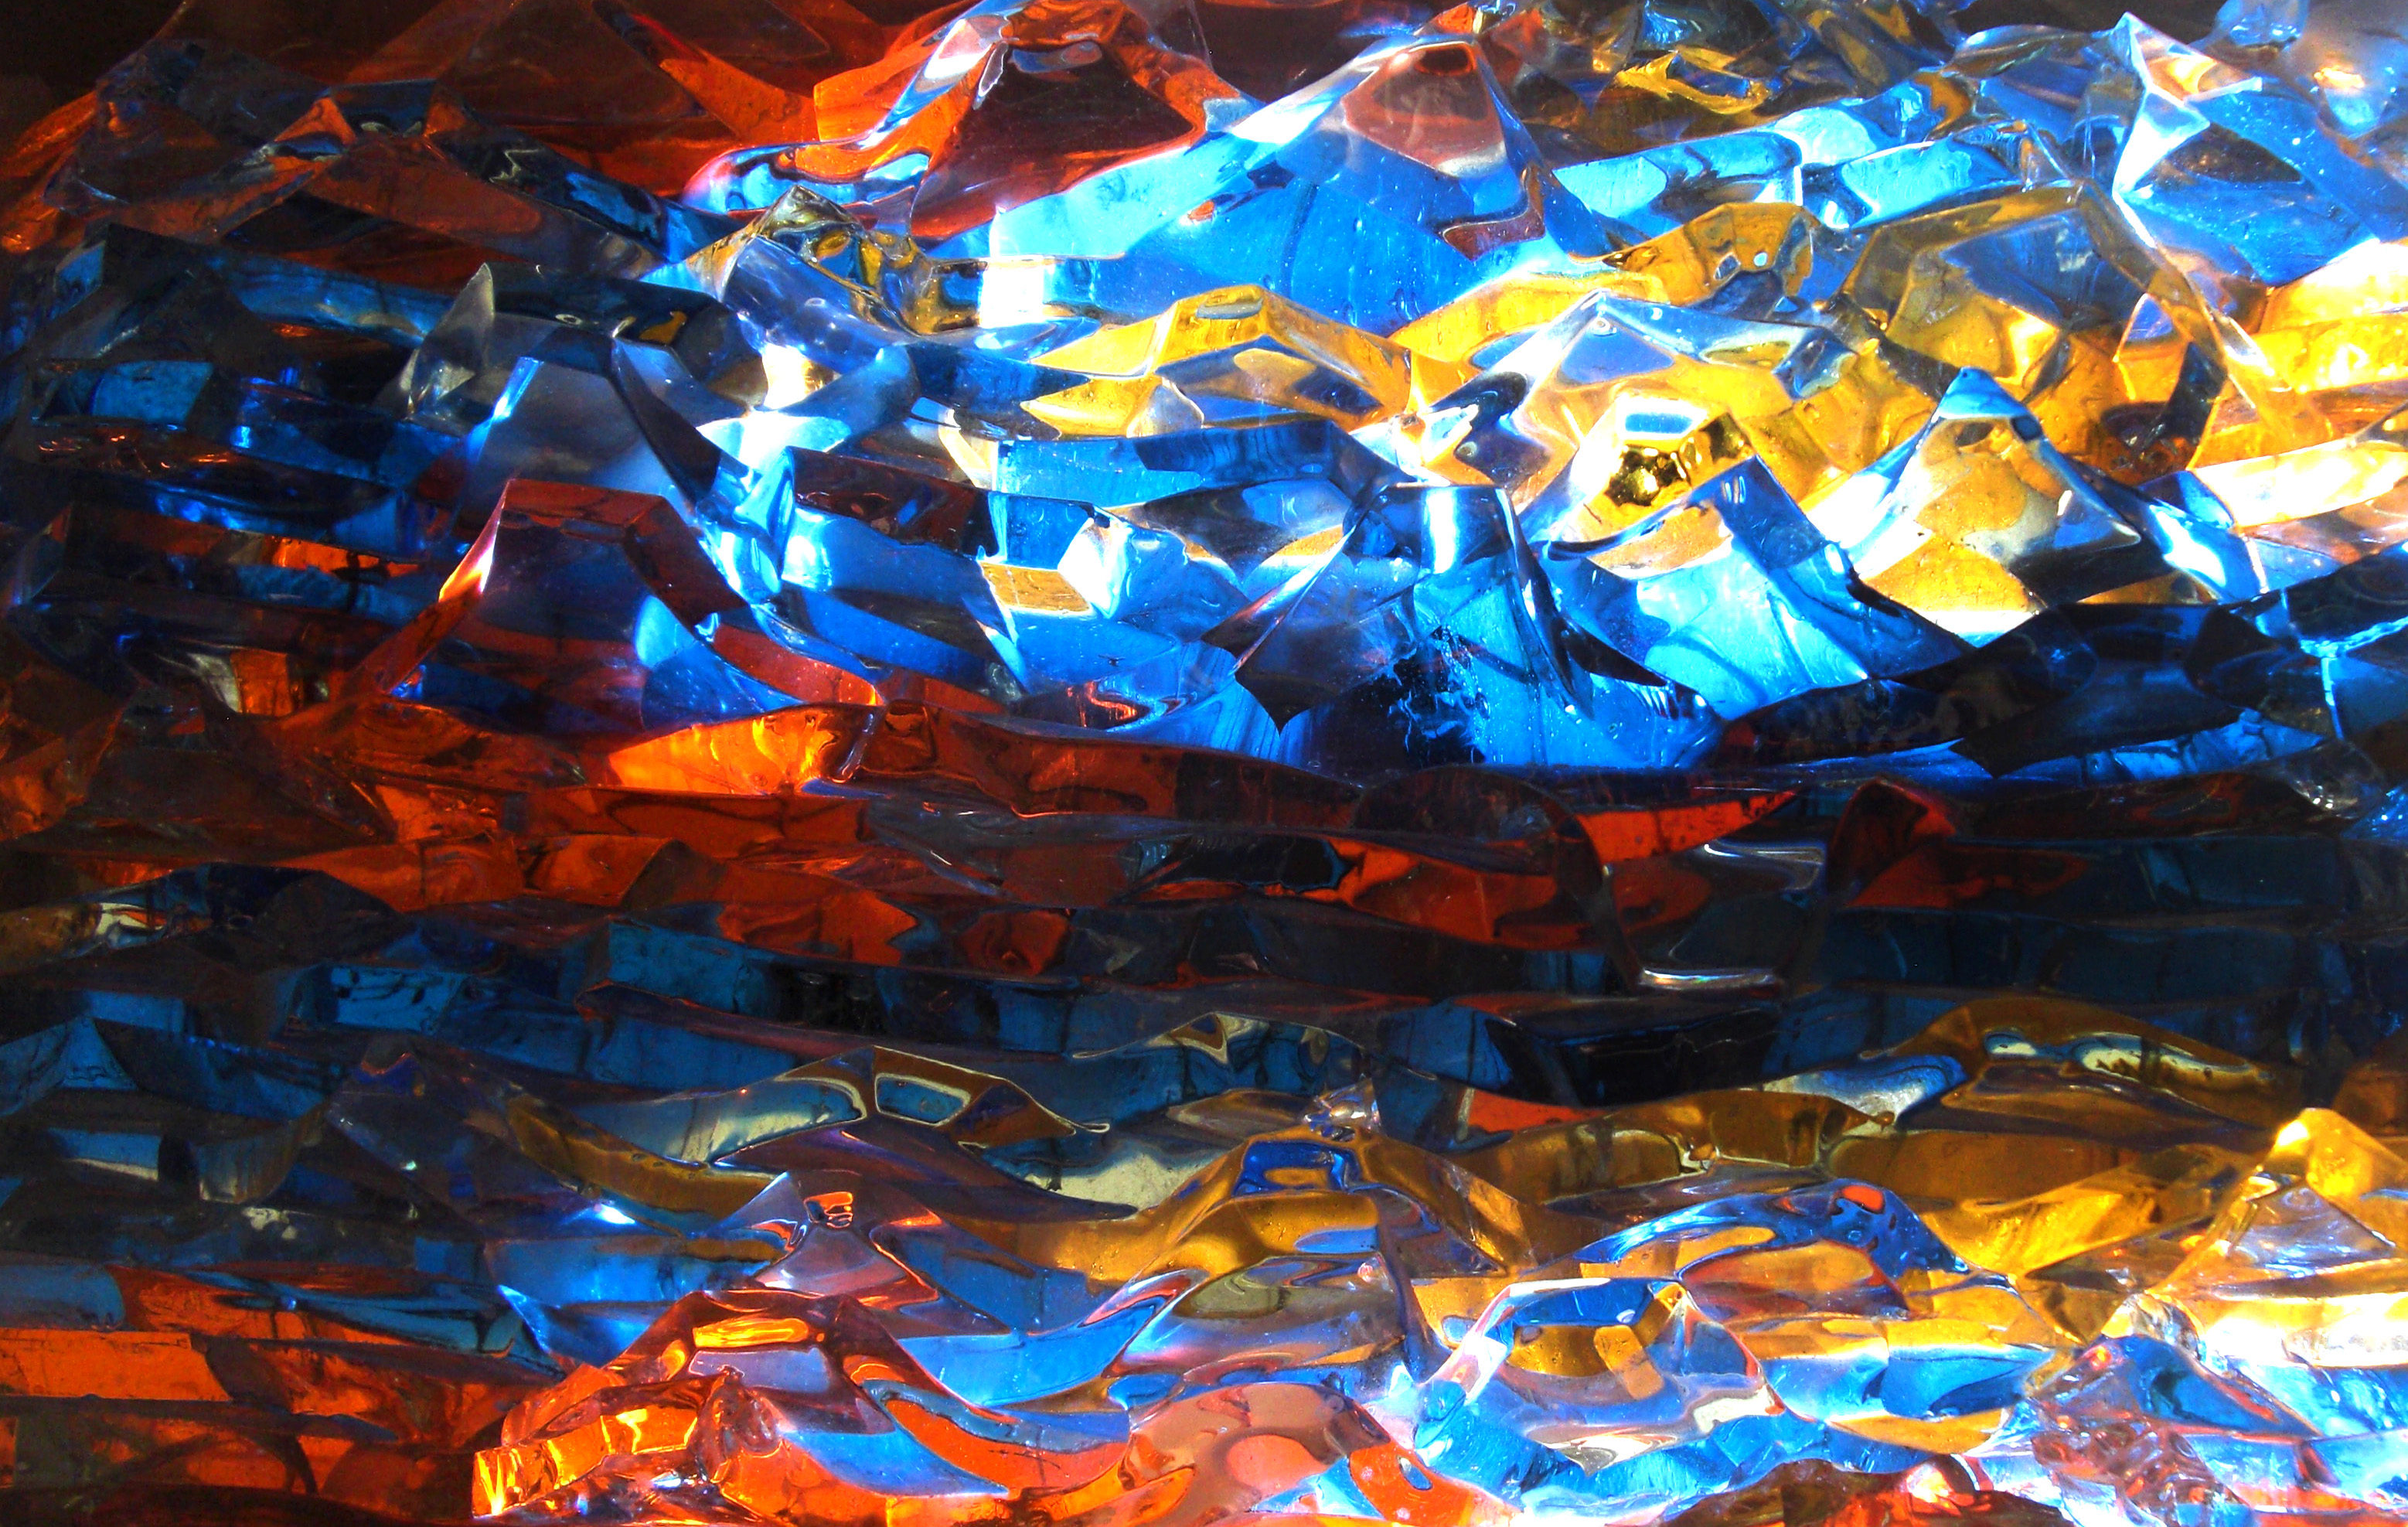 7_ABSTRACT GLASS